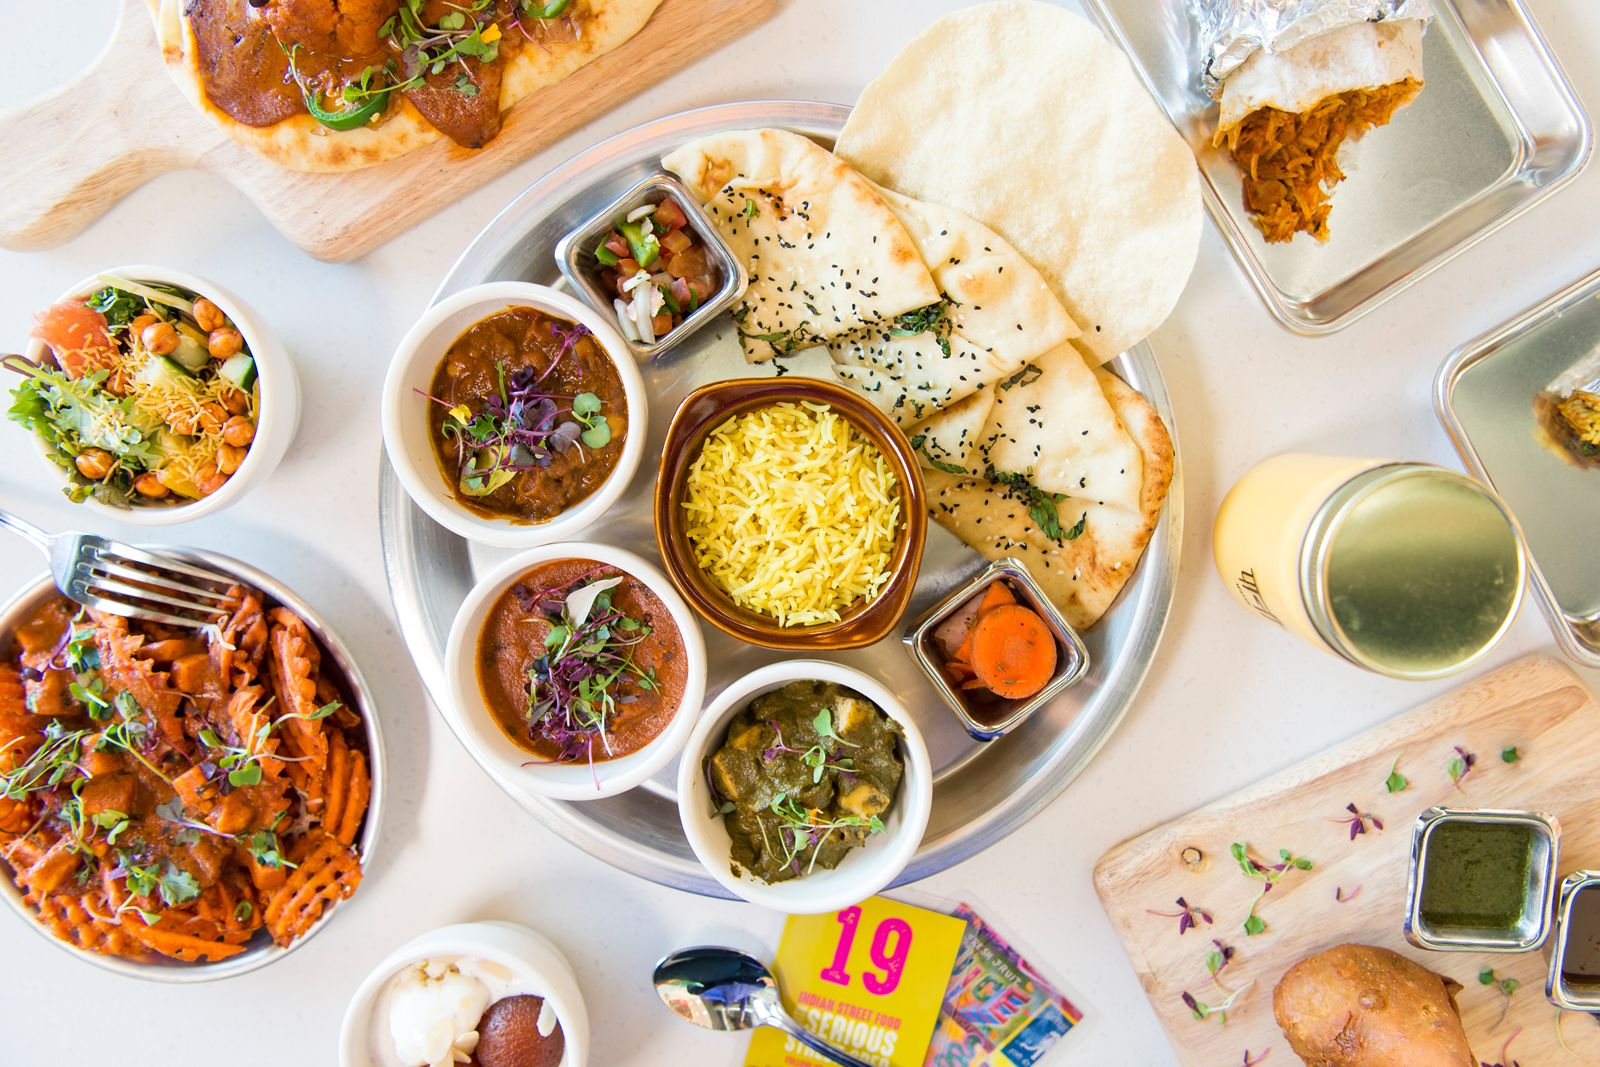 Curry Up Now, the largest and fastest growing Indian fast casual concept in the country, has just finalized two new franchise deals that will bring the innovative Indian brand to Atlanta, GA and Sacramento, CA.